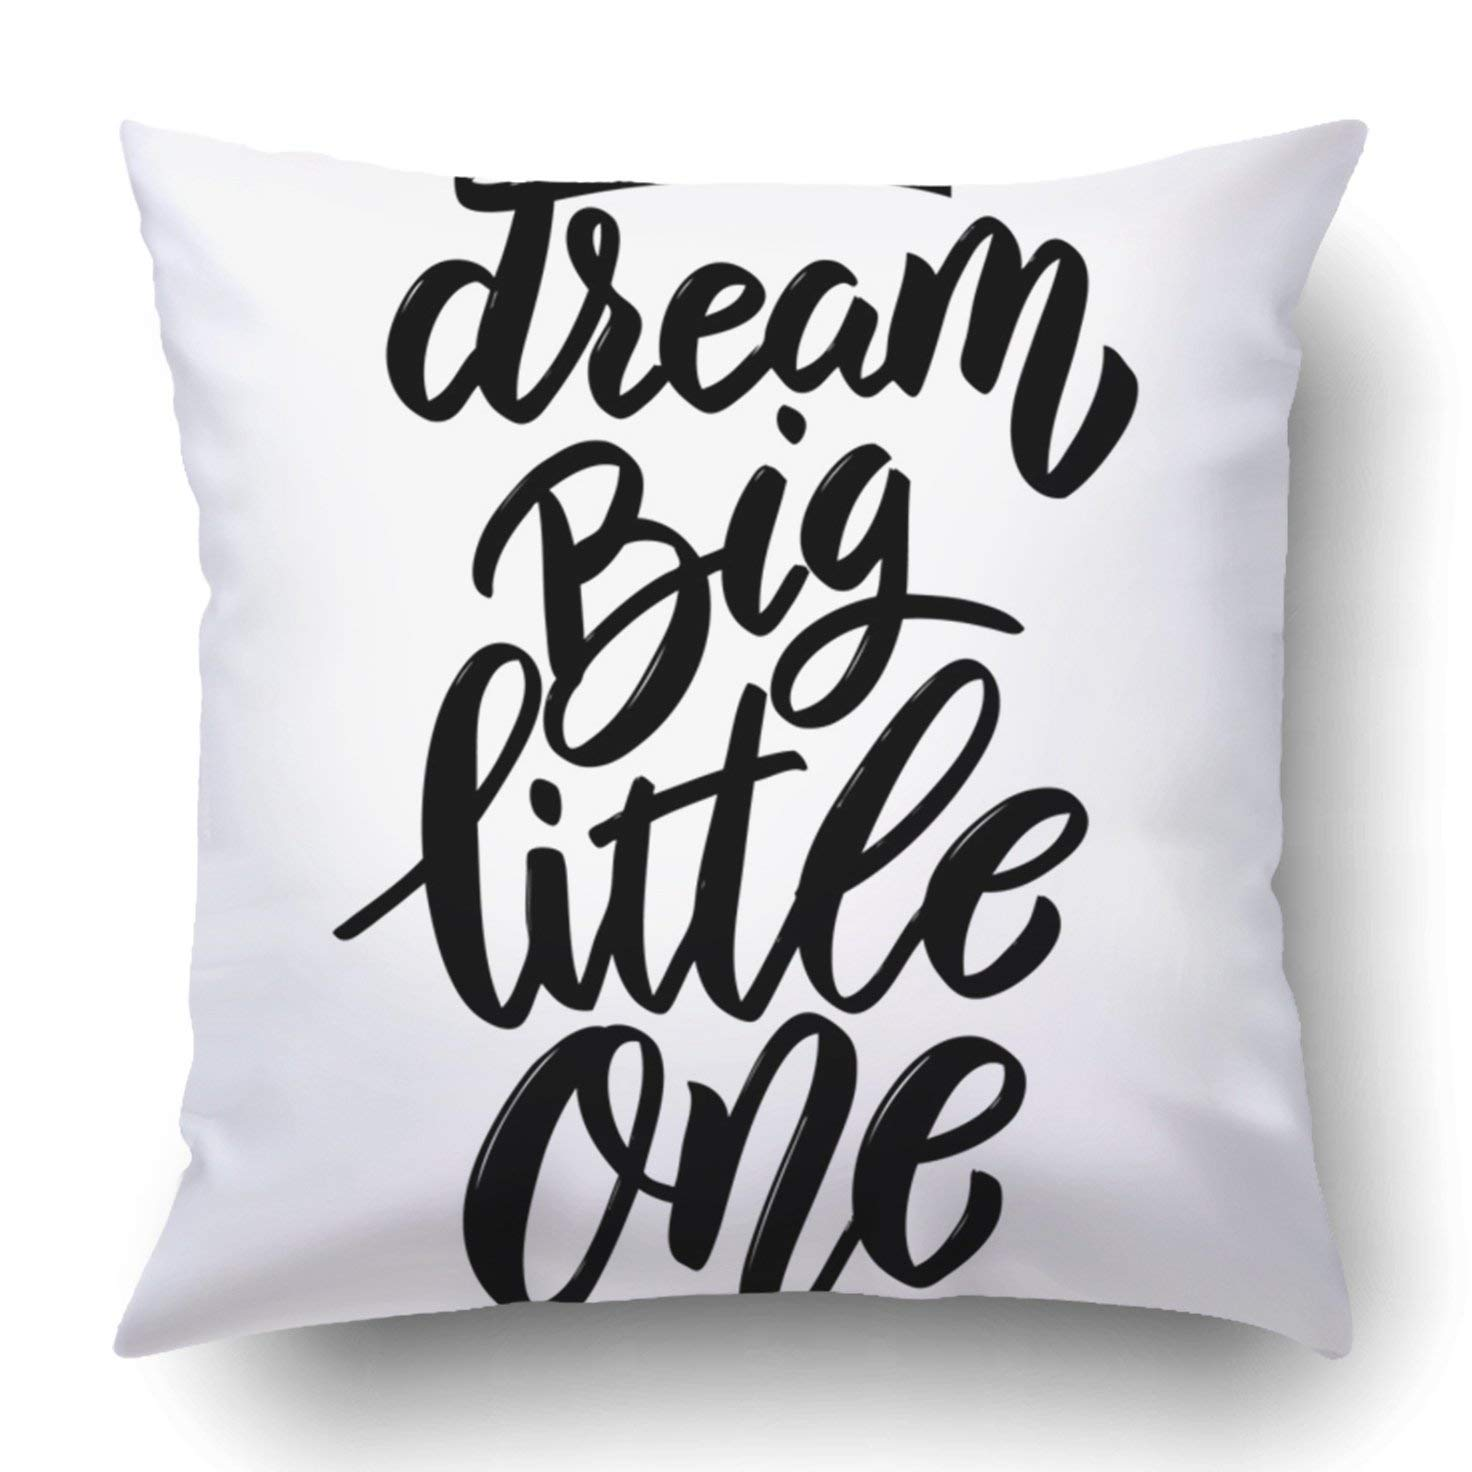 BPBOP Black Birth Dream Big Little One Lettering Phrase White Design For Brush Child Pillowcase Cover Cushion 18x18 inch